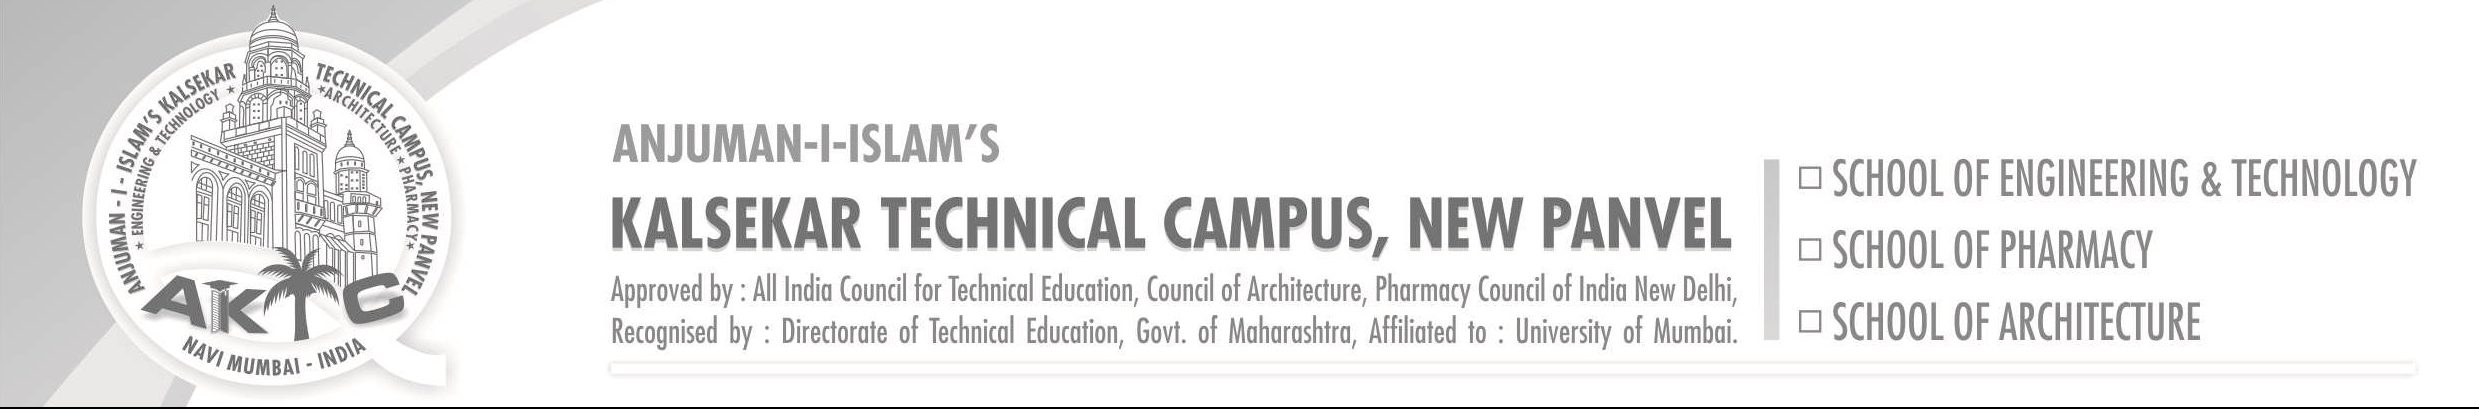 AIKTC School of Engineering & Technology, New Panvel